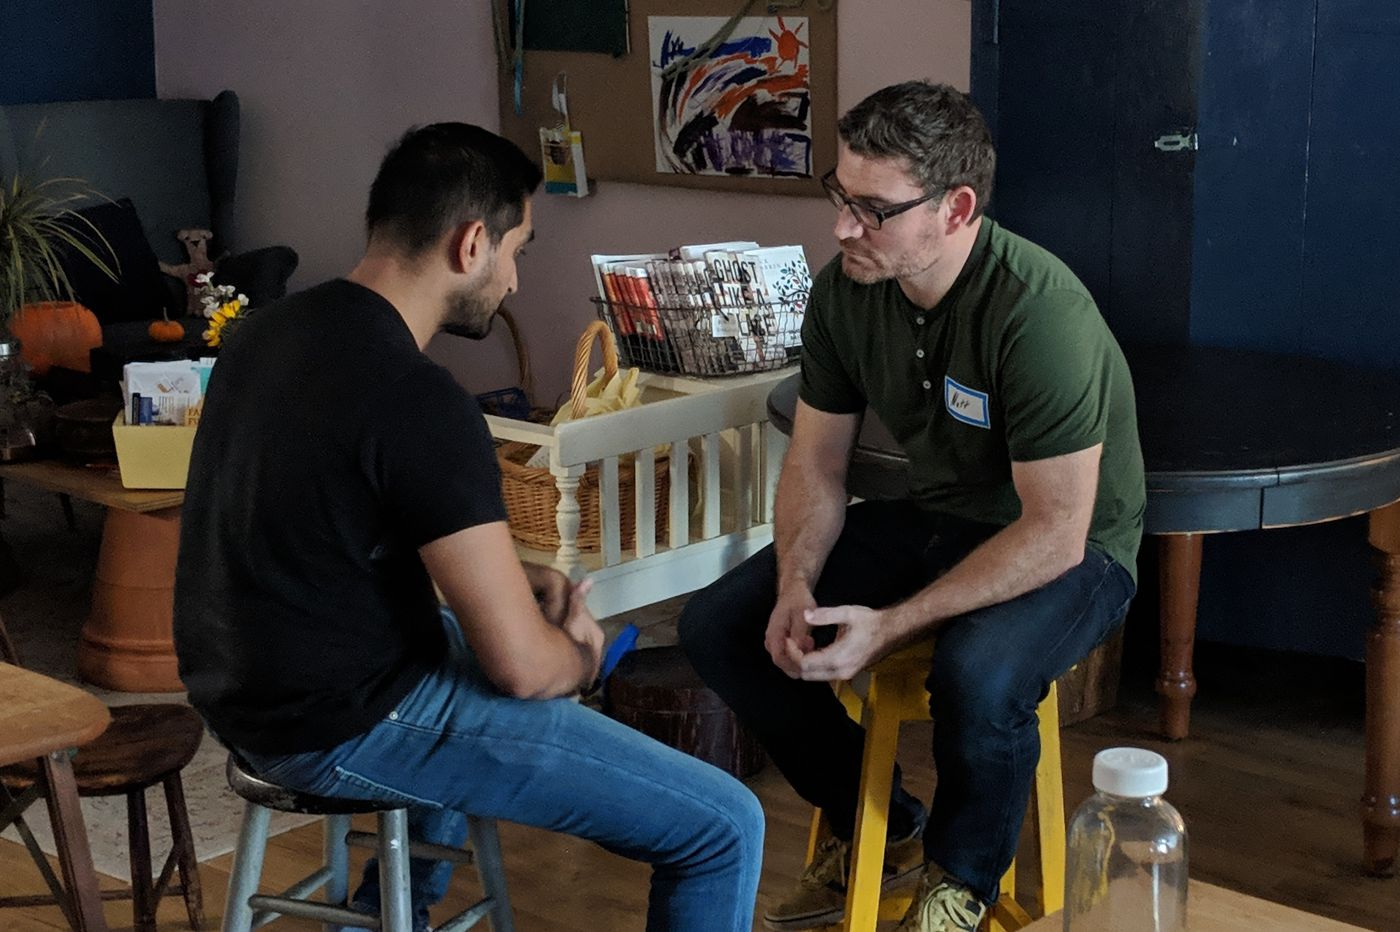 'Authentic relating': A new way of getting to know strangers in Philadelphia